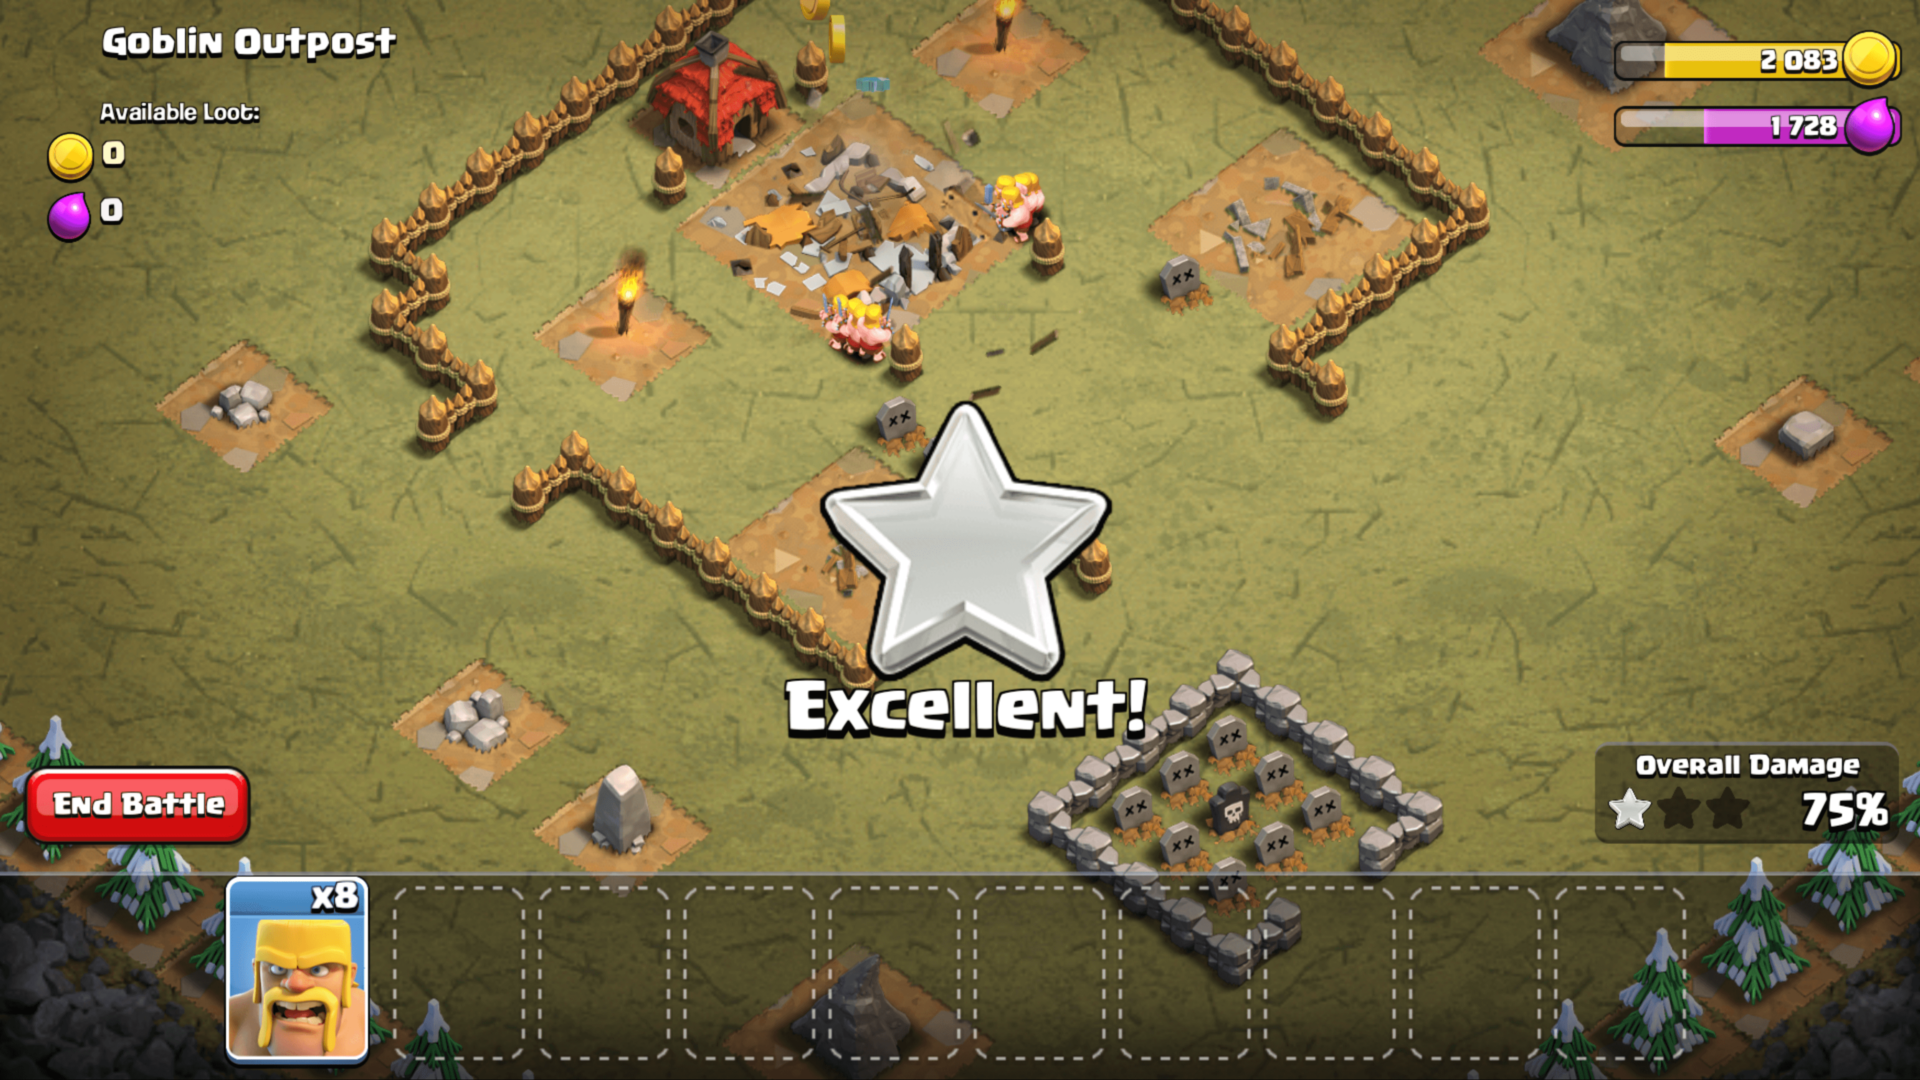 Excellent screenshot of Clash of Clans video game interface.